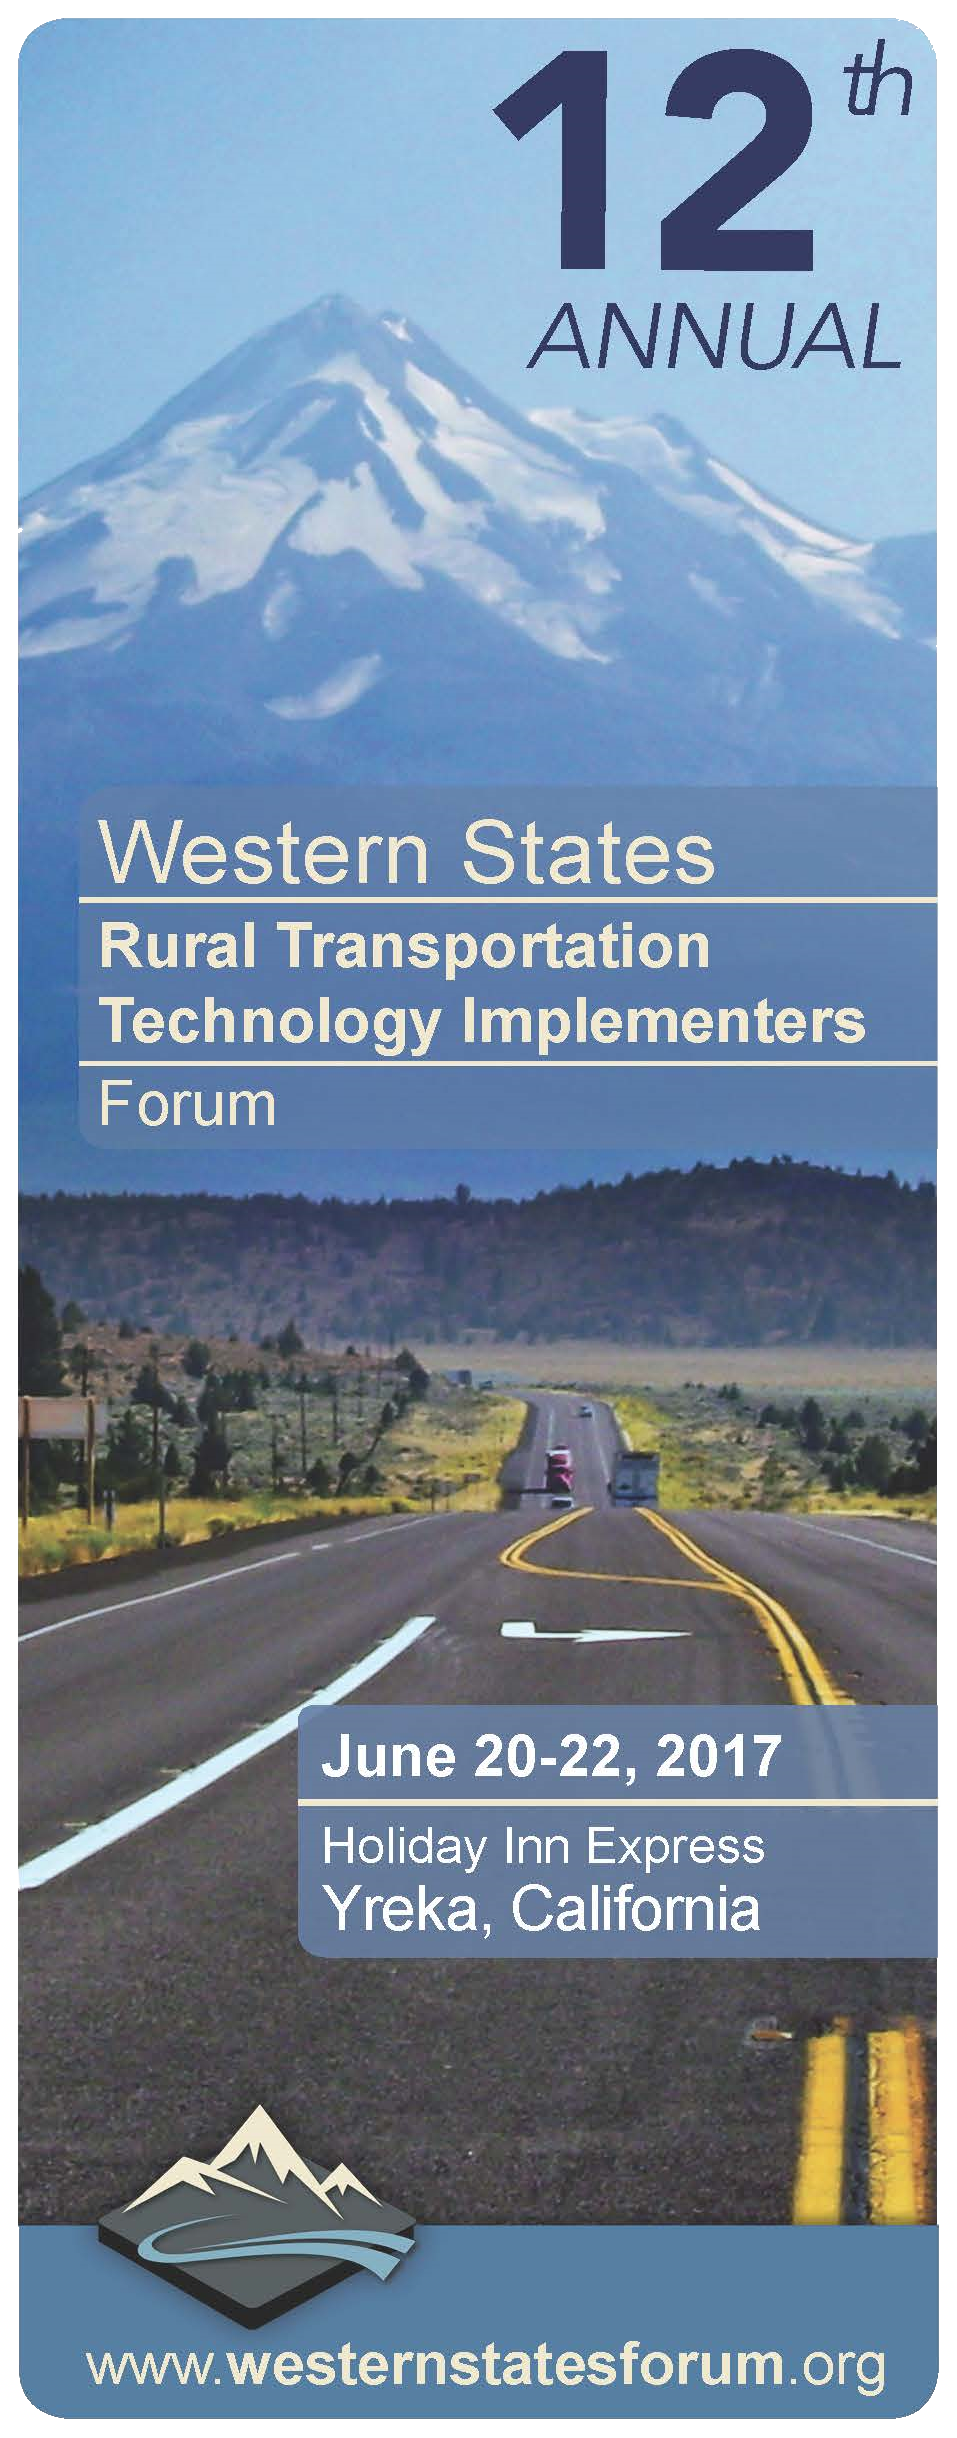 12th Annual Western States Forum